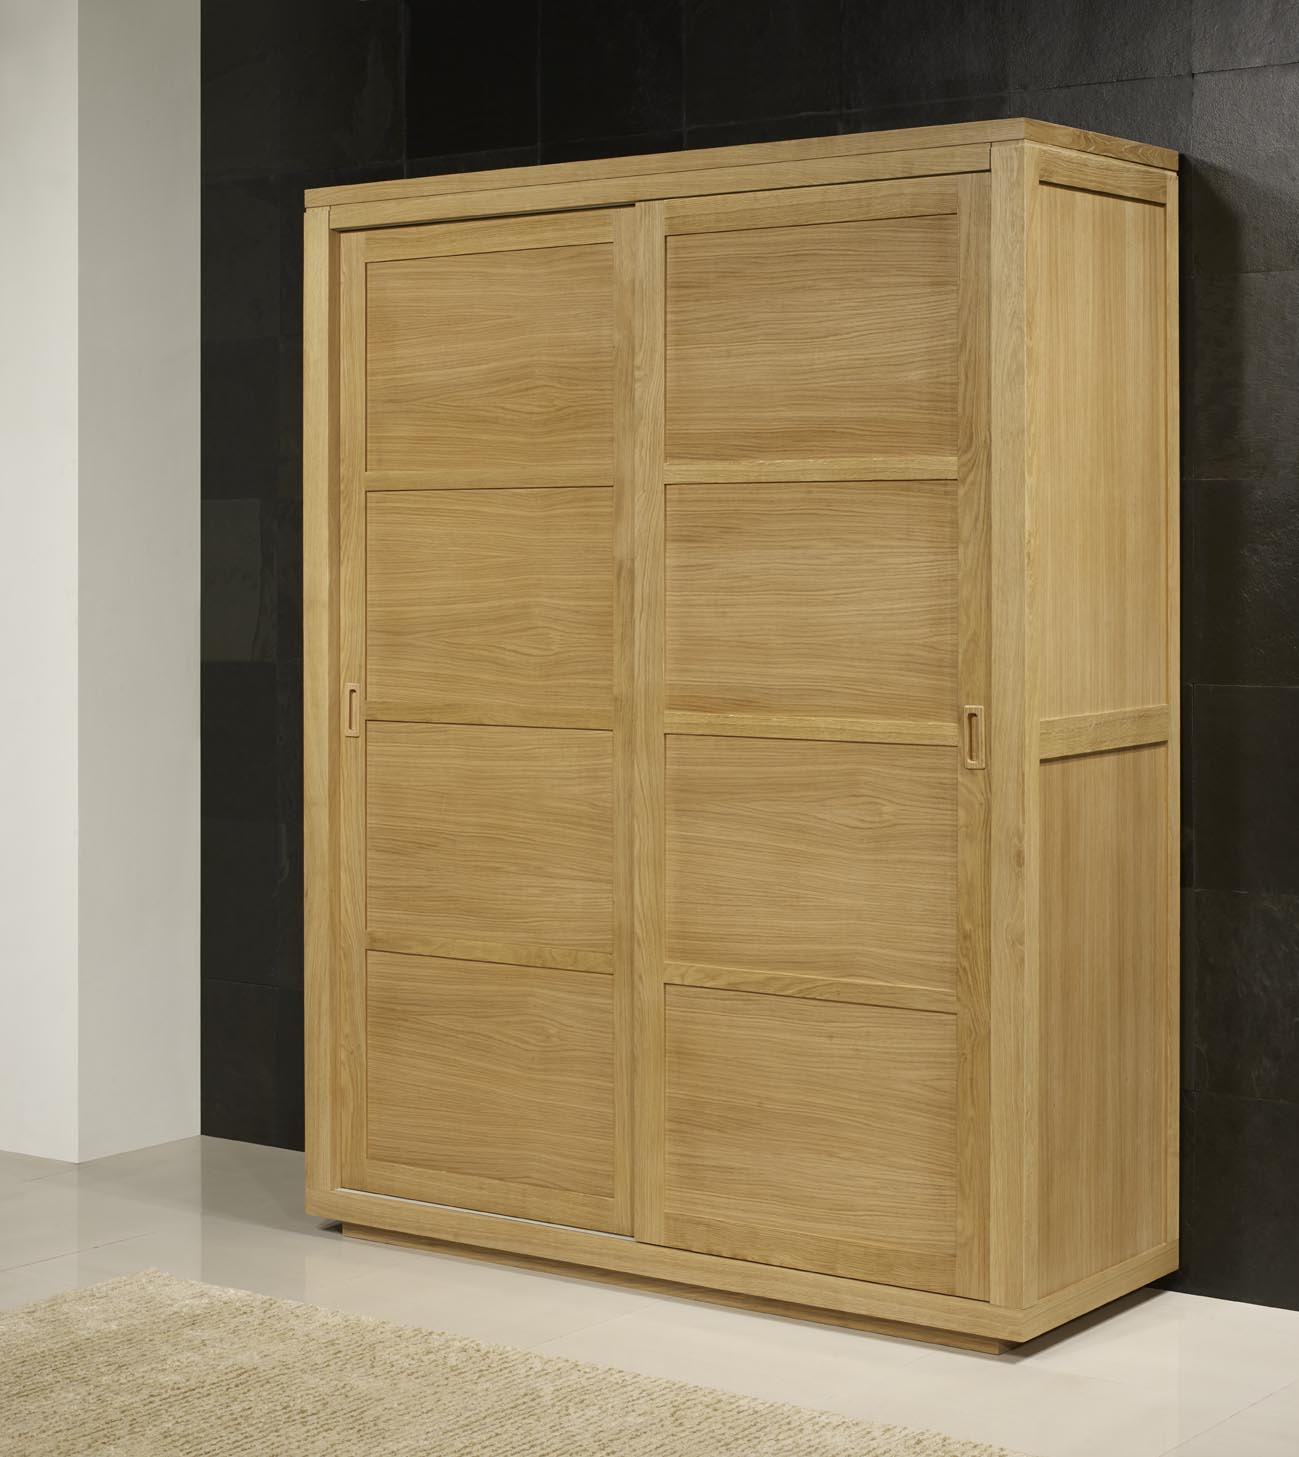 armoire porte coulissante bois. Black Bedroom Furniture Sets. Home Design Ideas